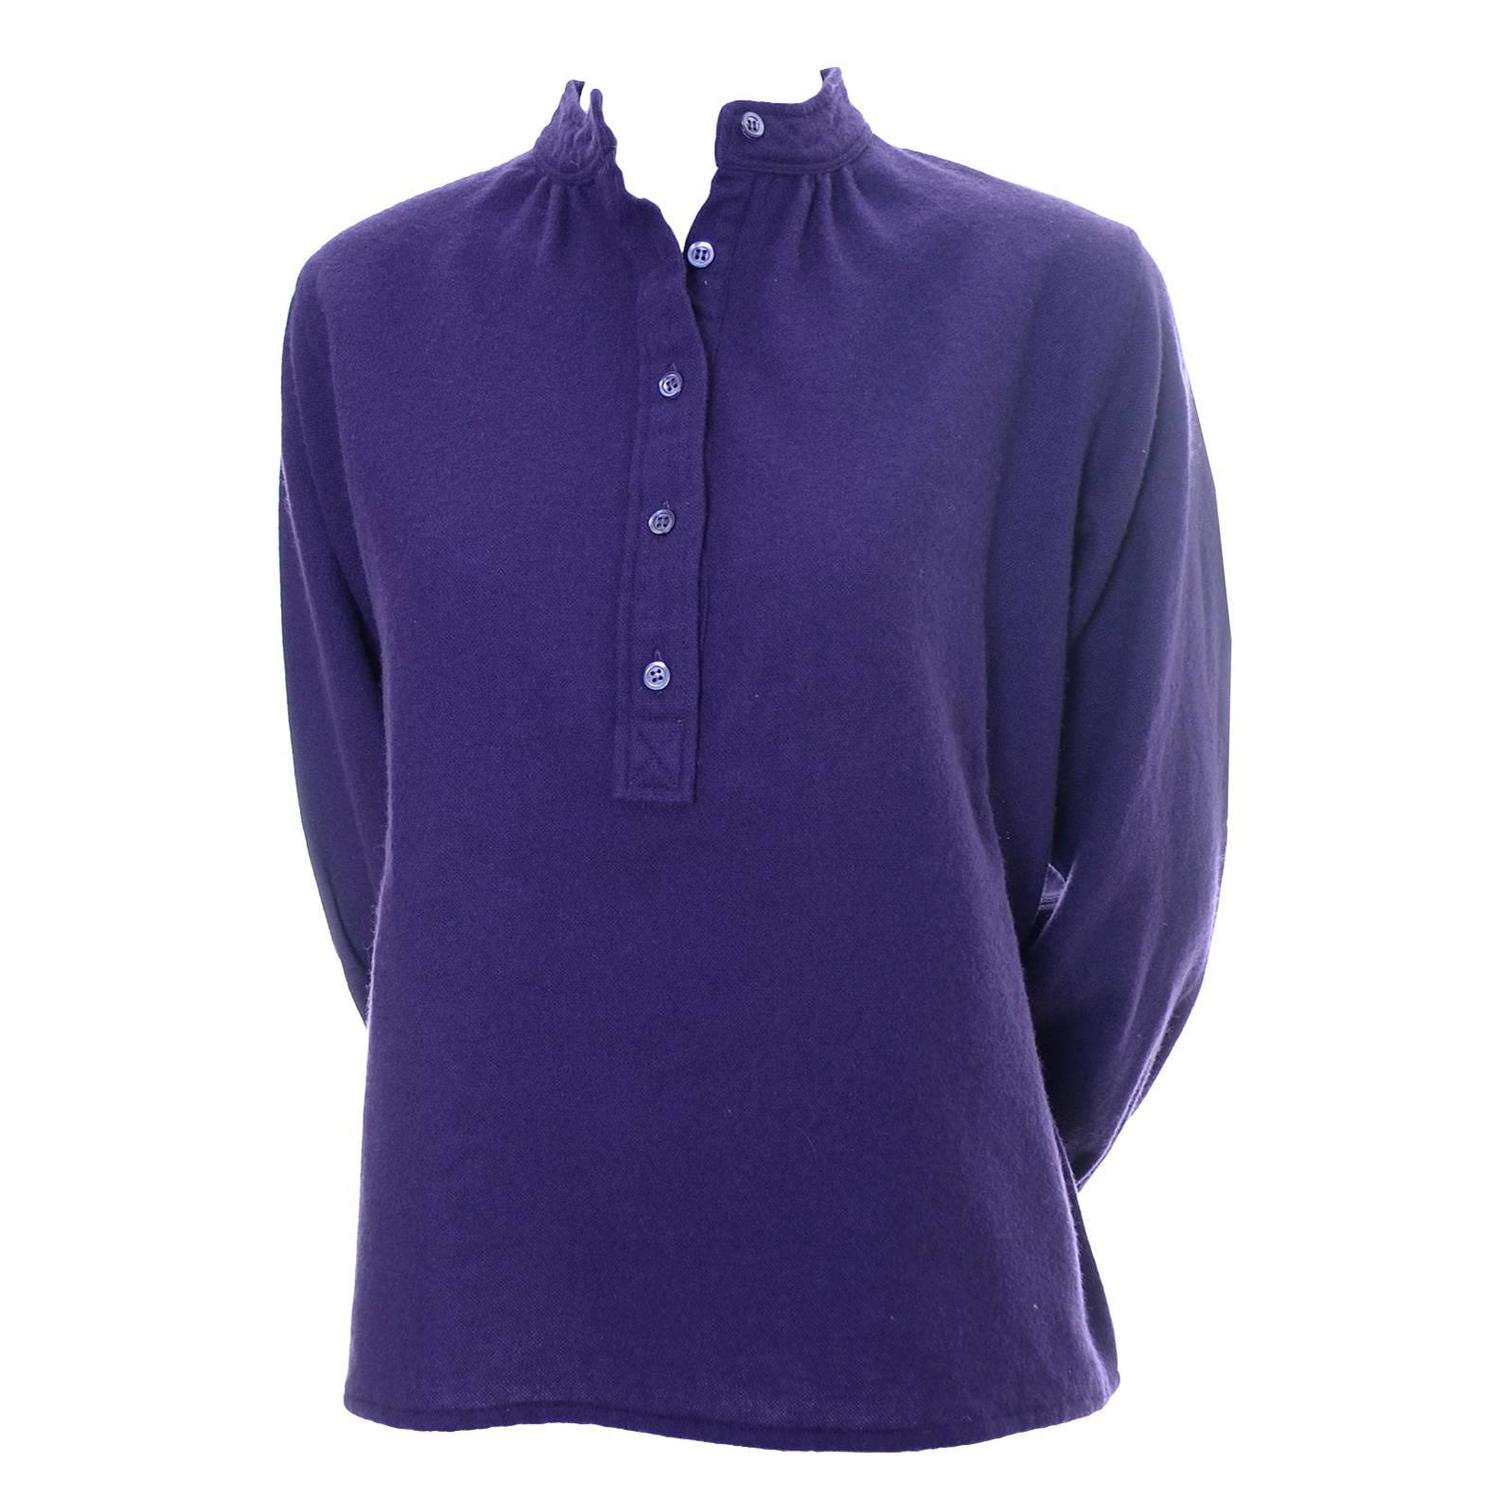 Ysl Purple Peasant Blouse 14